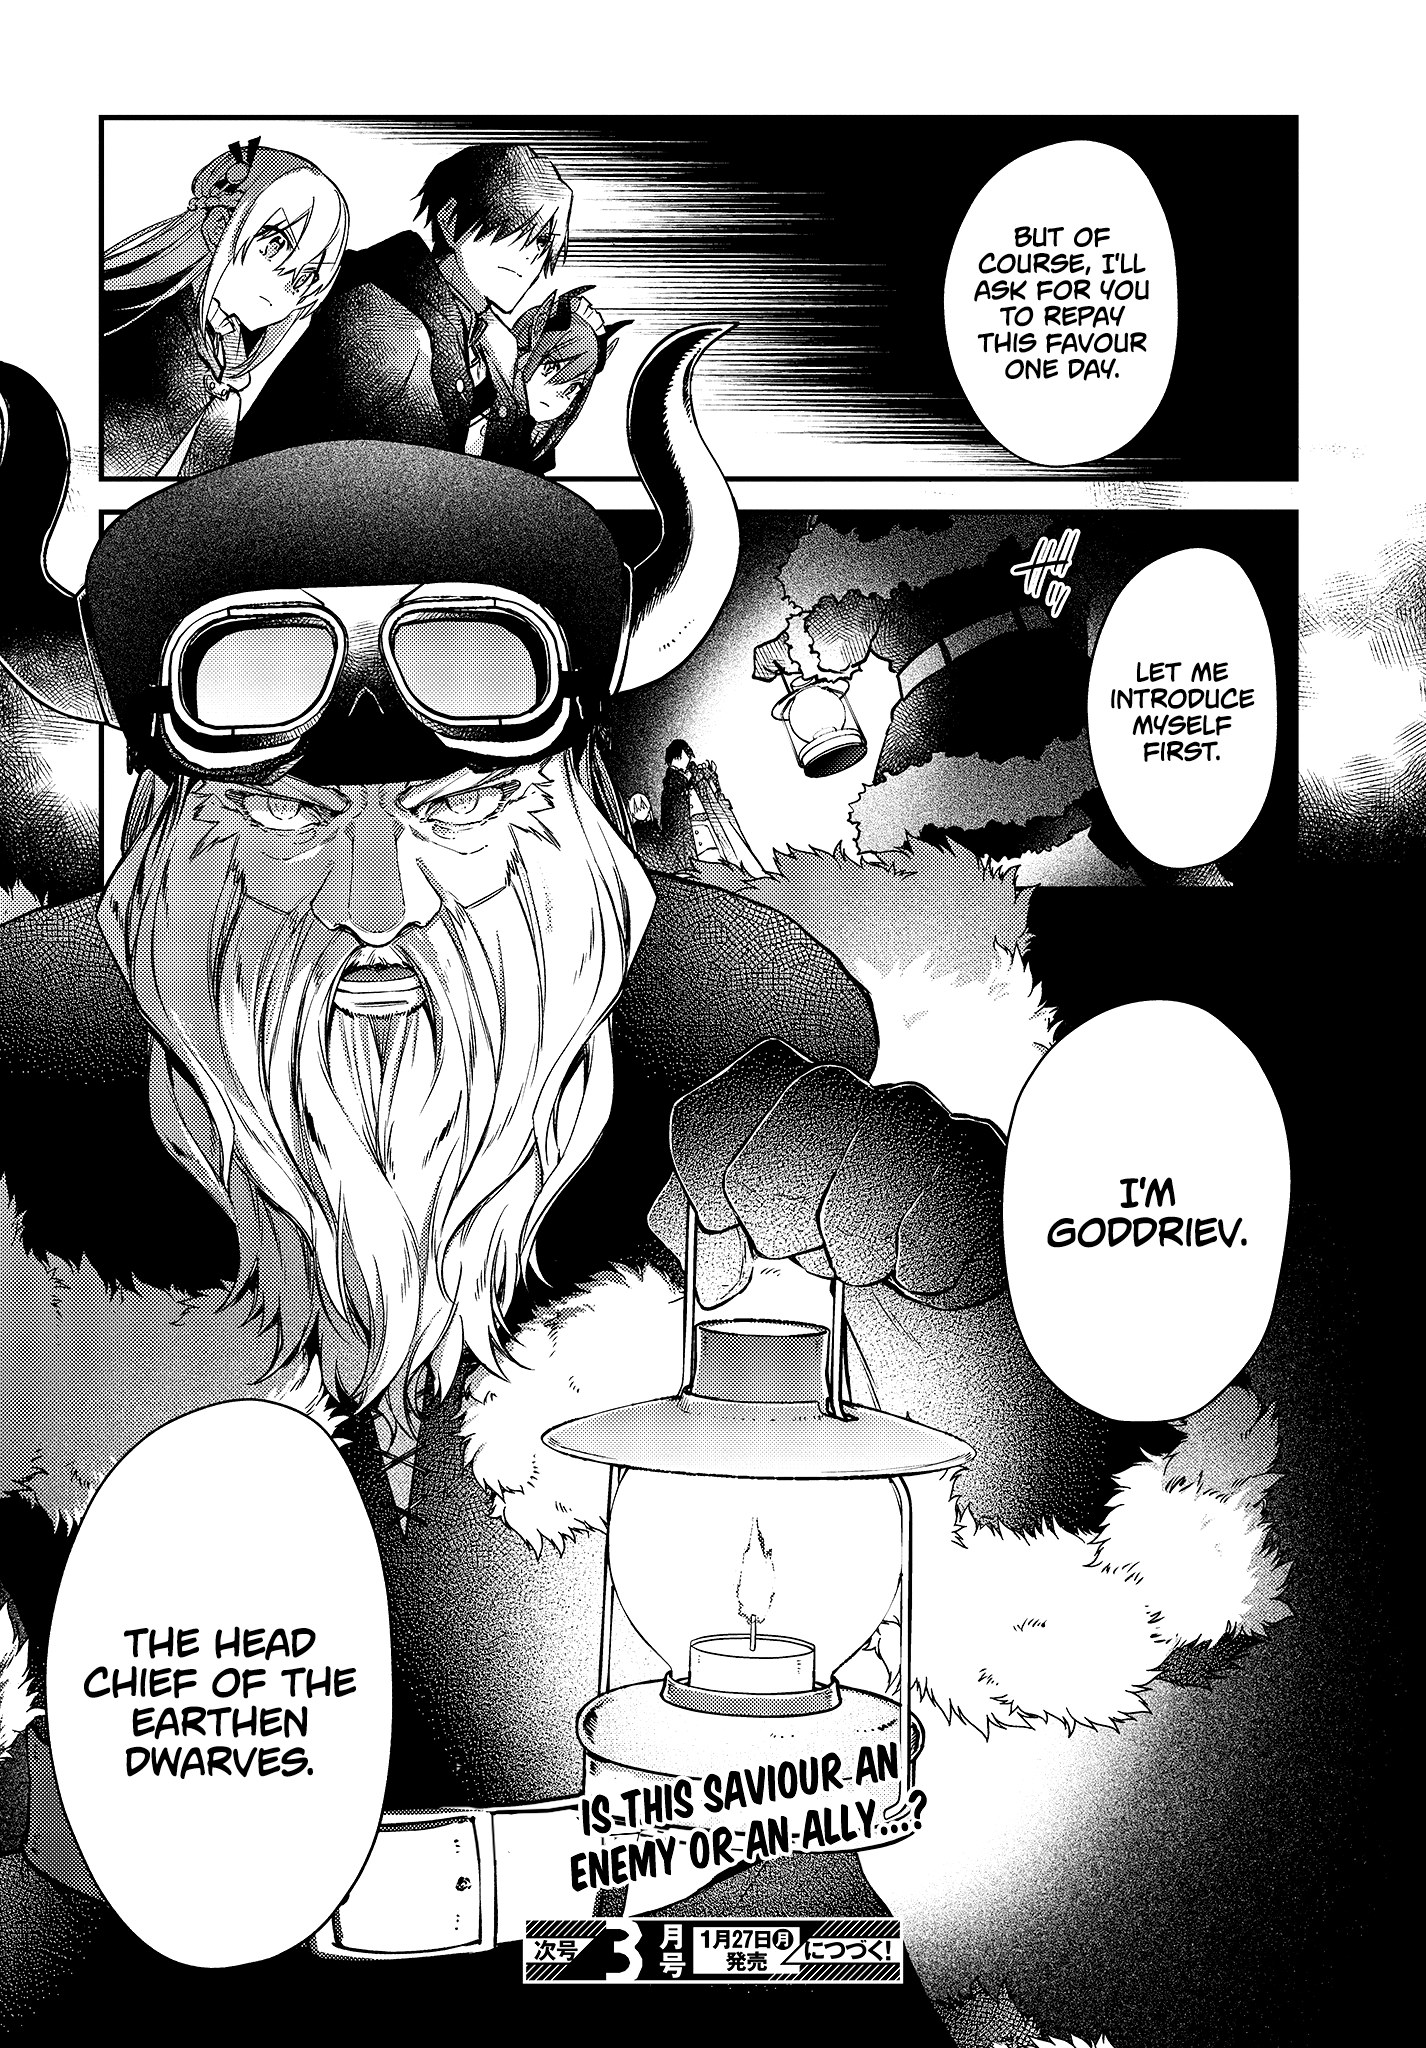 Manga The Legendary Rebuilding of a World by a Realist Demon King - Chapter 11 Page 17